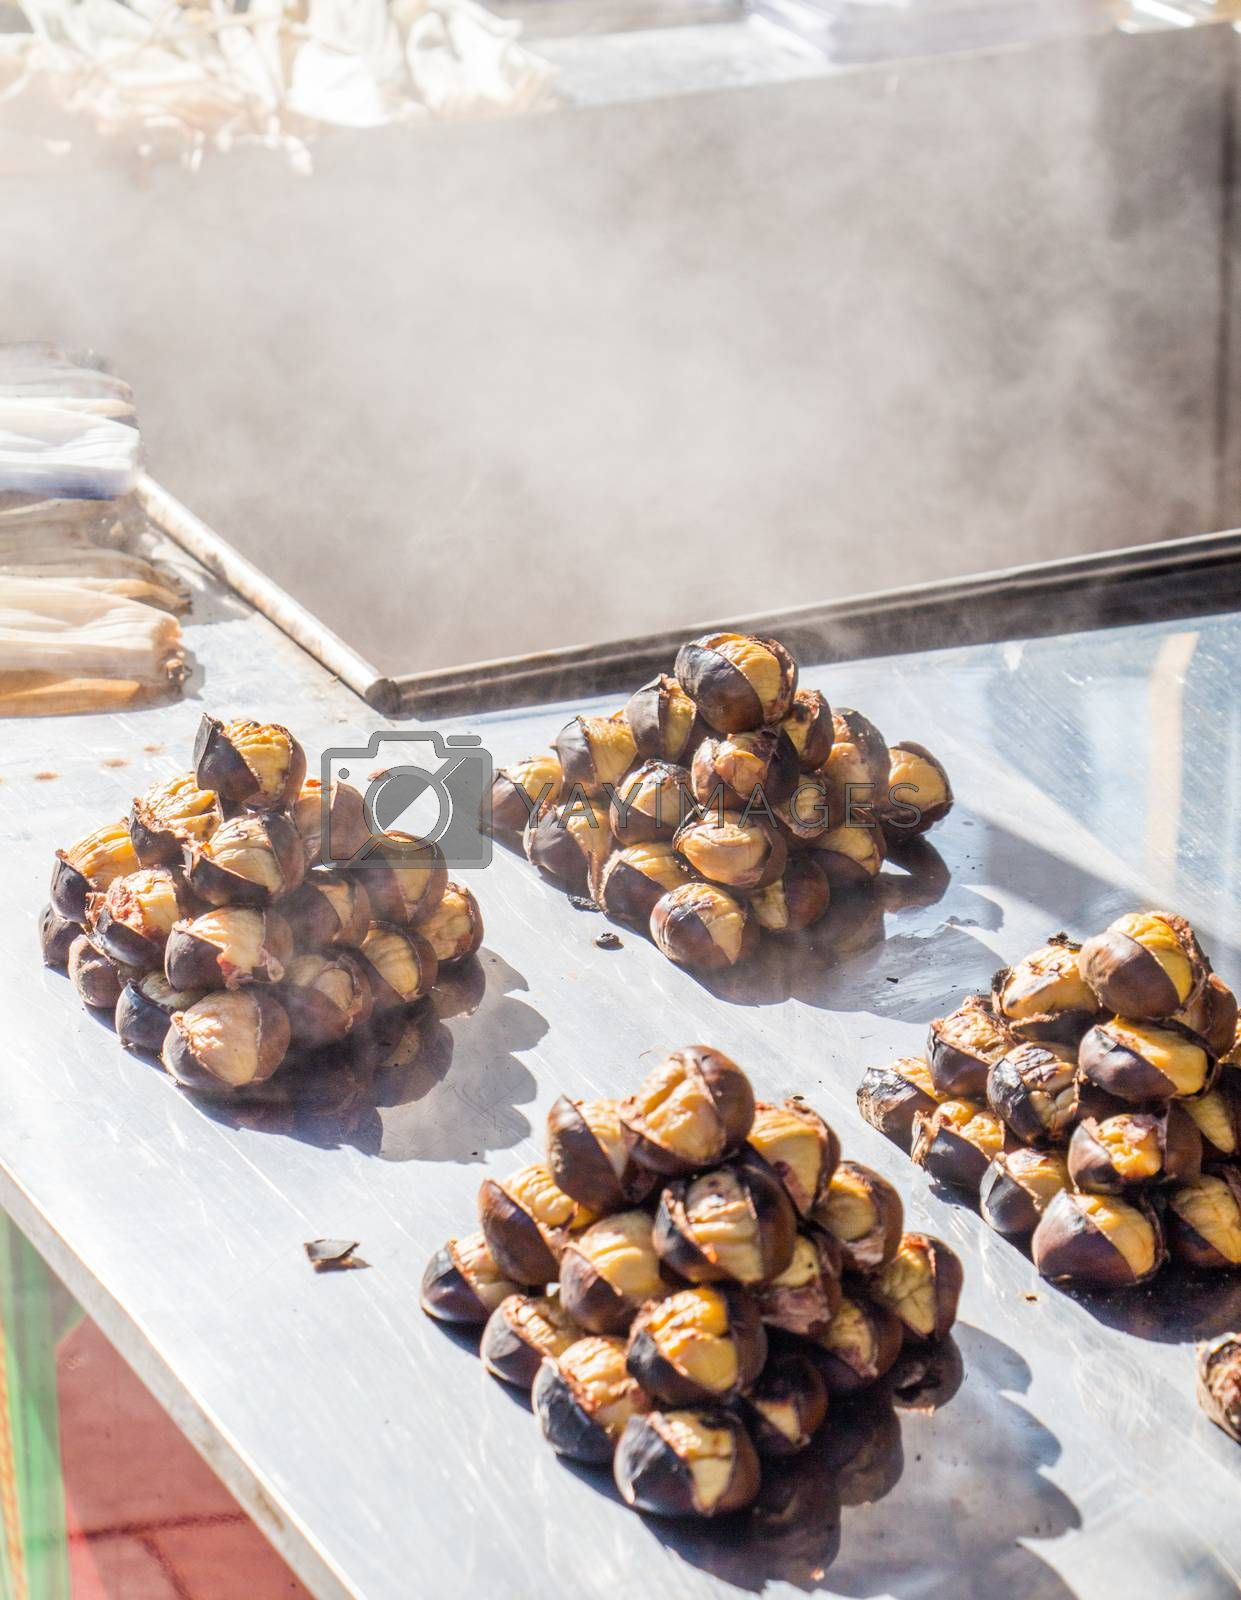 Organic brown chestnuts roasted over a hot fire